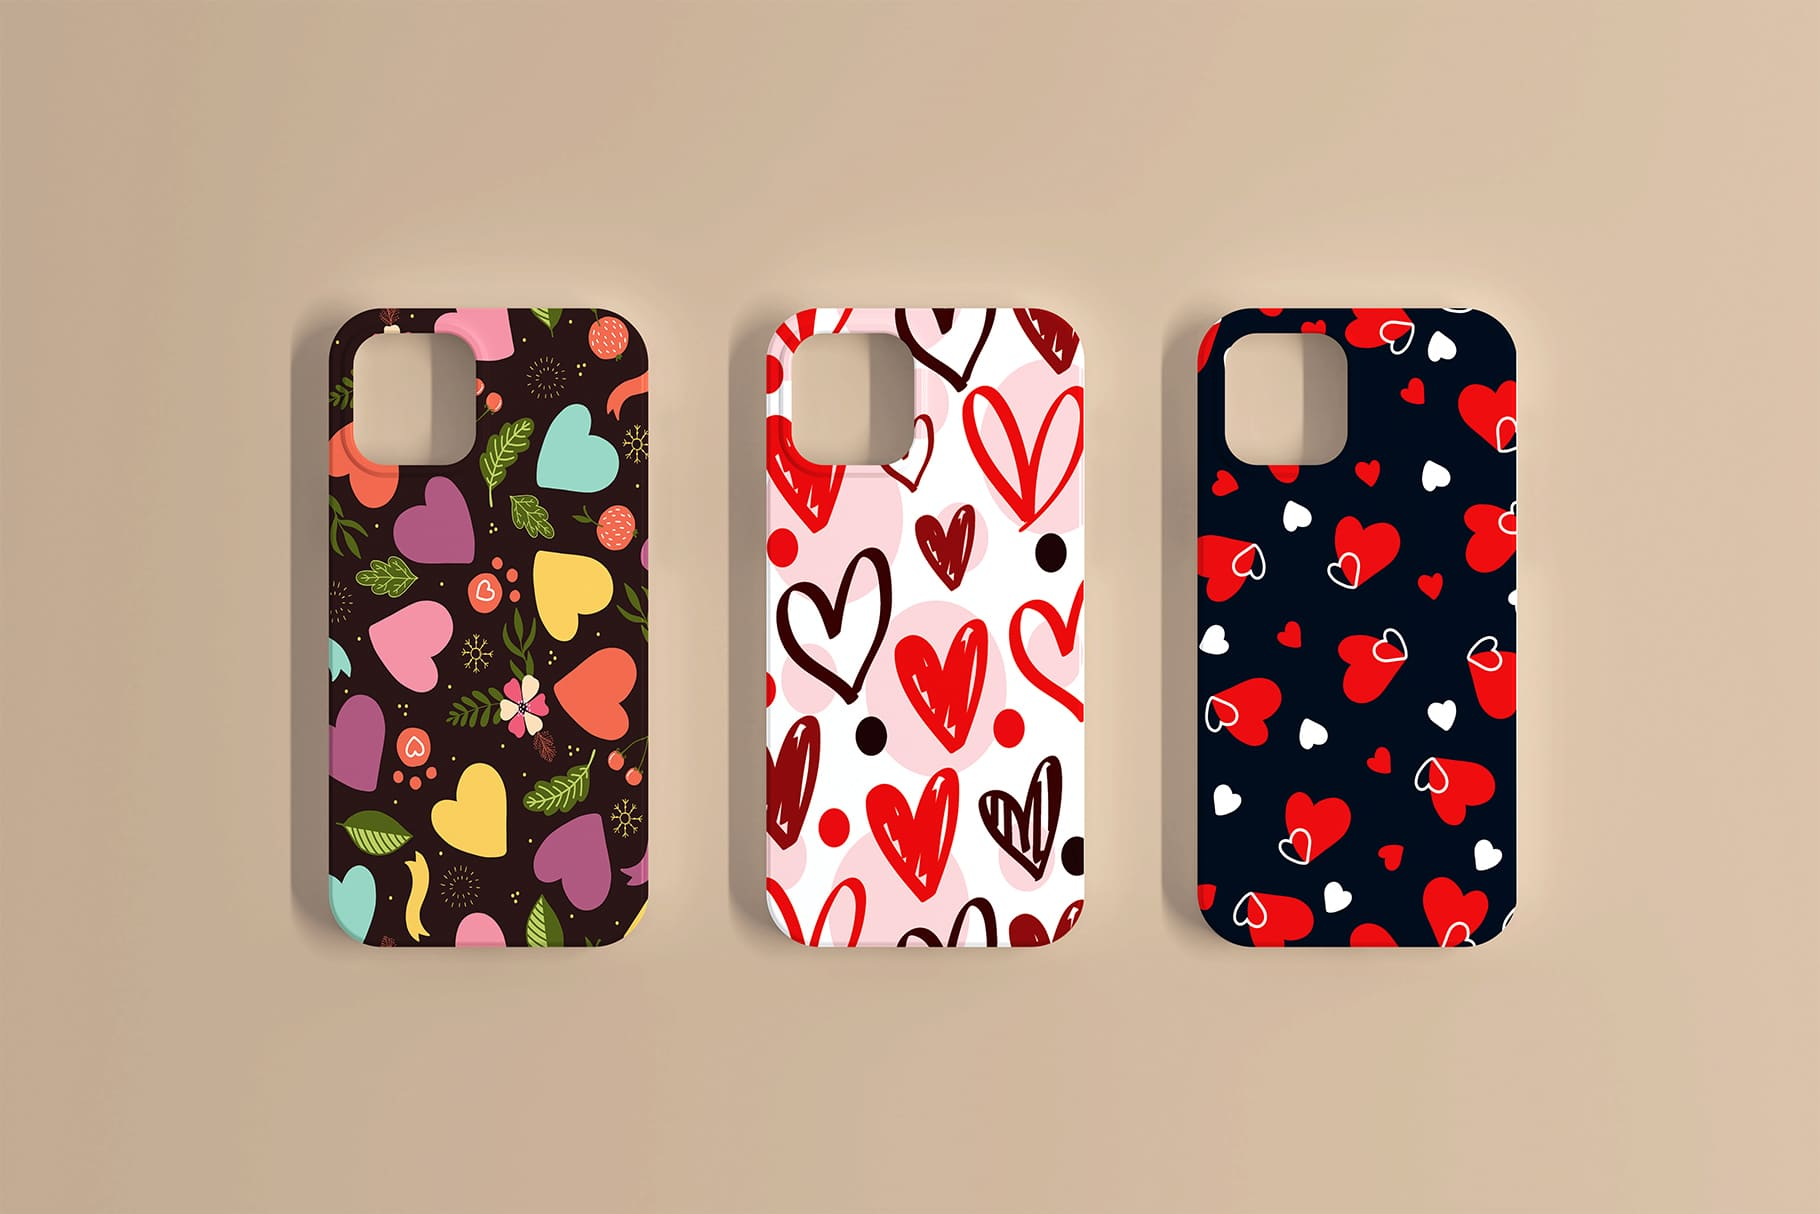 Phone cases in three colors and with different heart options.